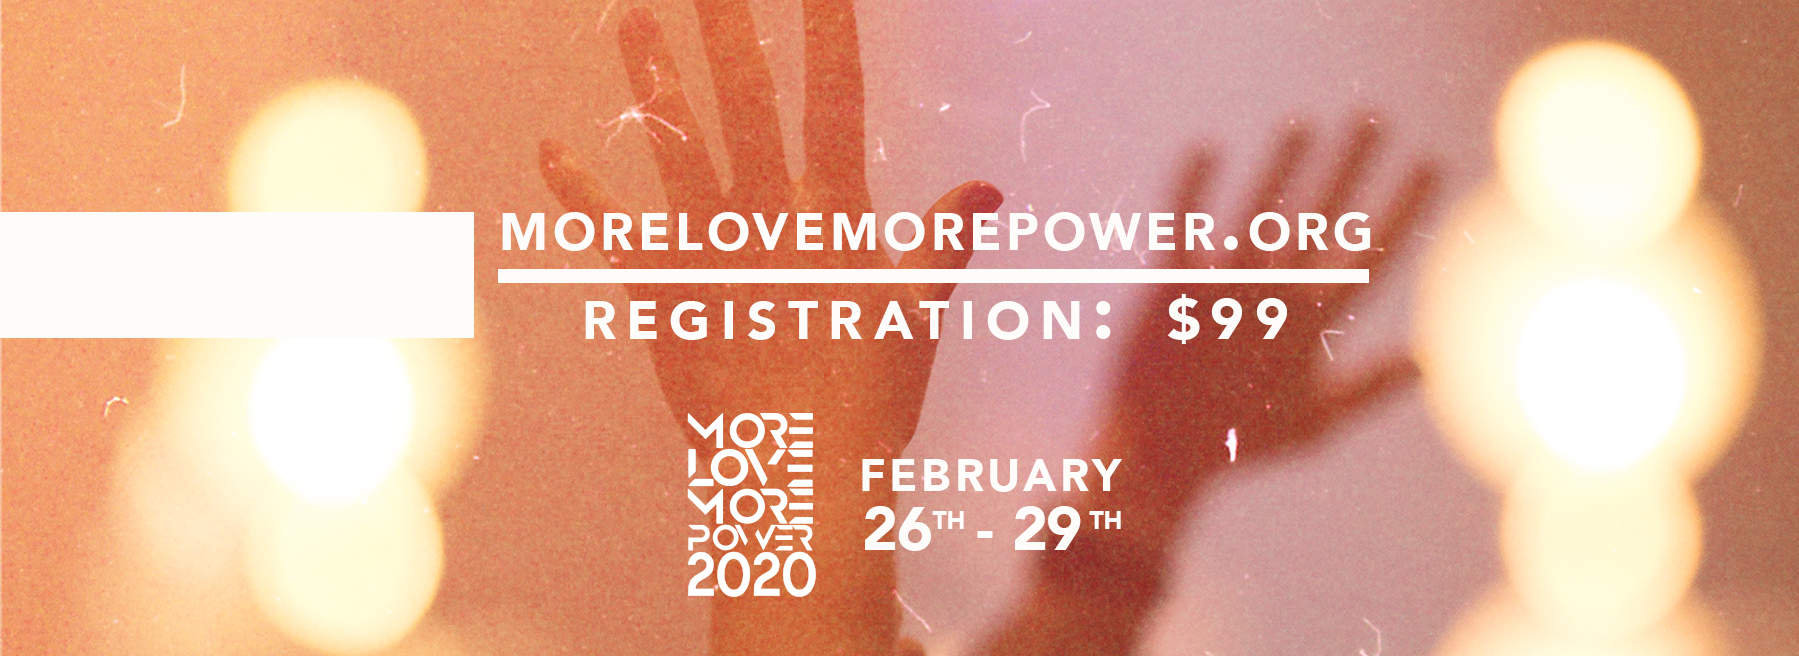 More Love More Power 2020